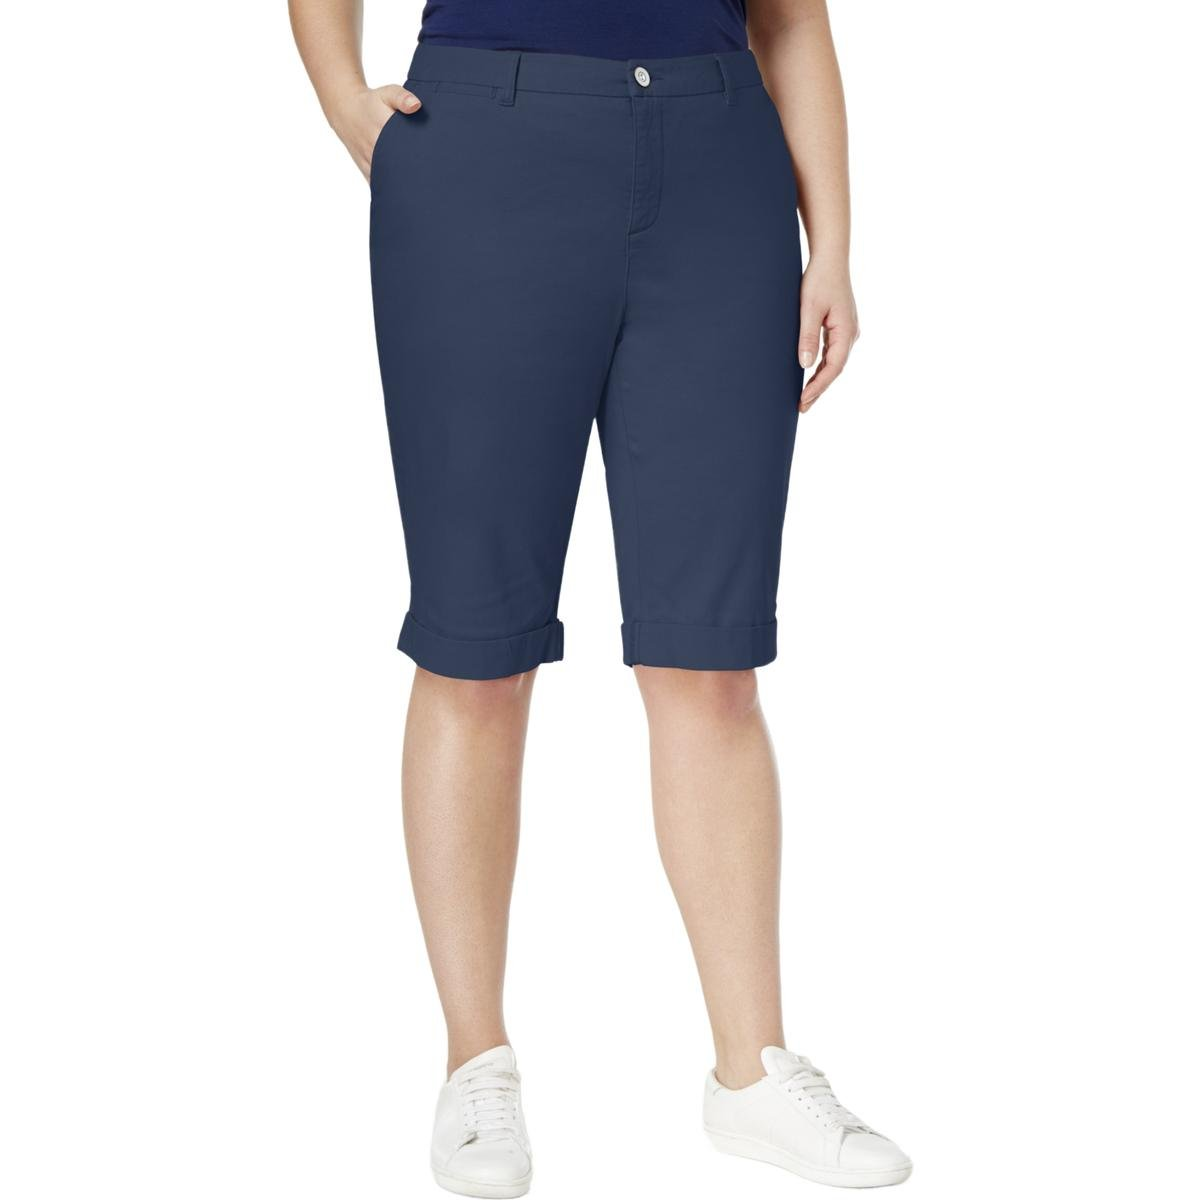 Style & Co. Womens Plus Comfort Waist Band Stretch Bermuda Shorts Blue 24W